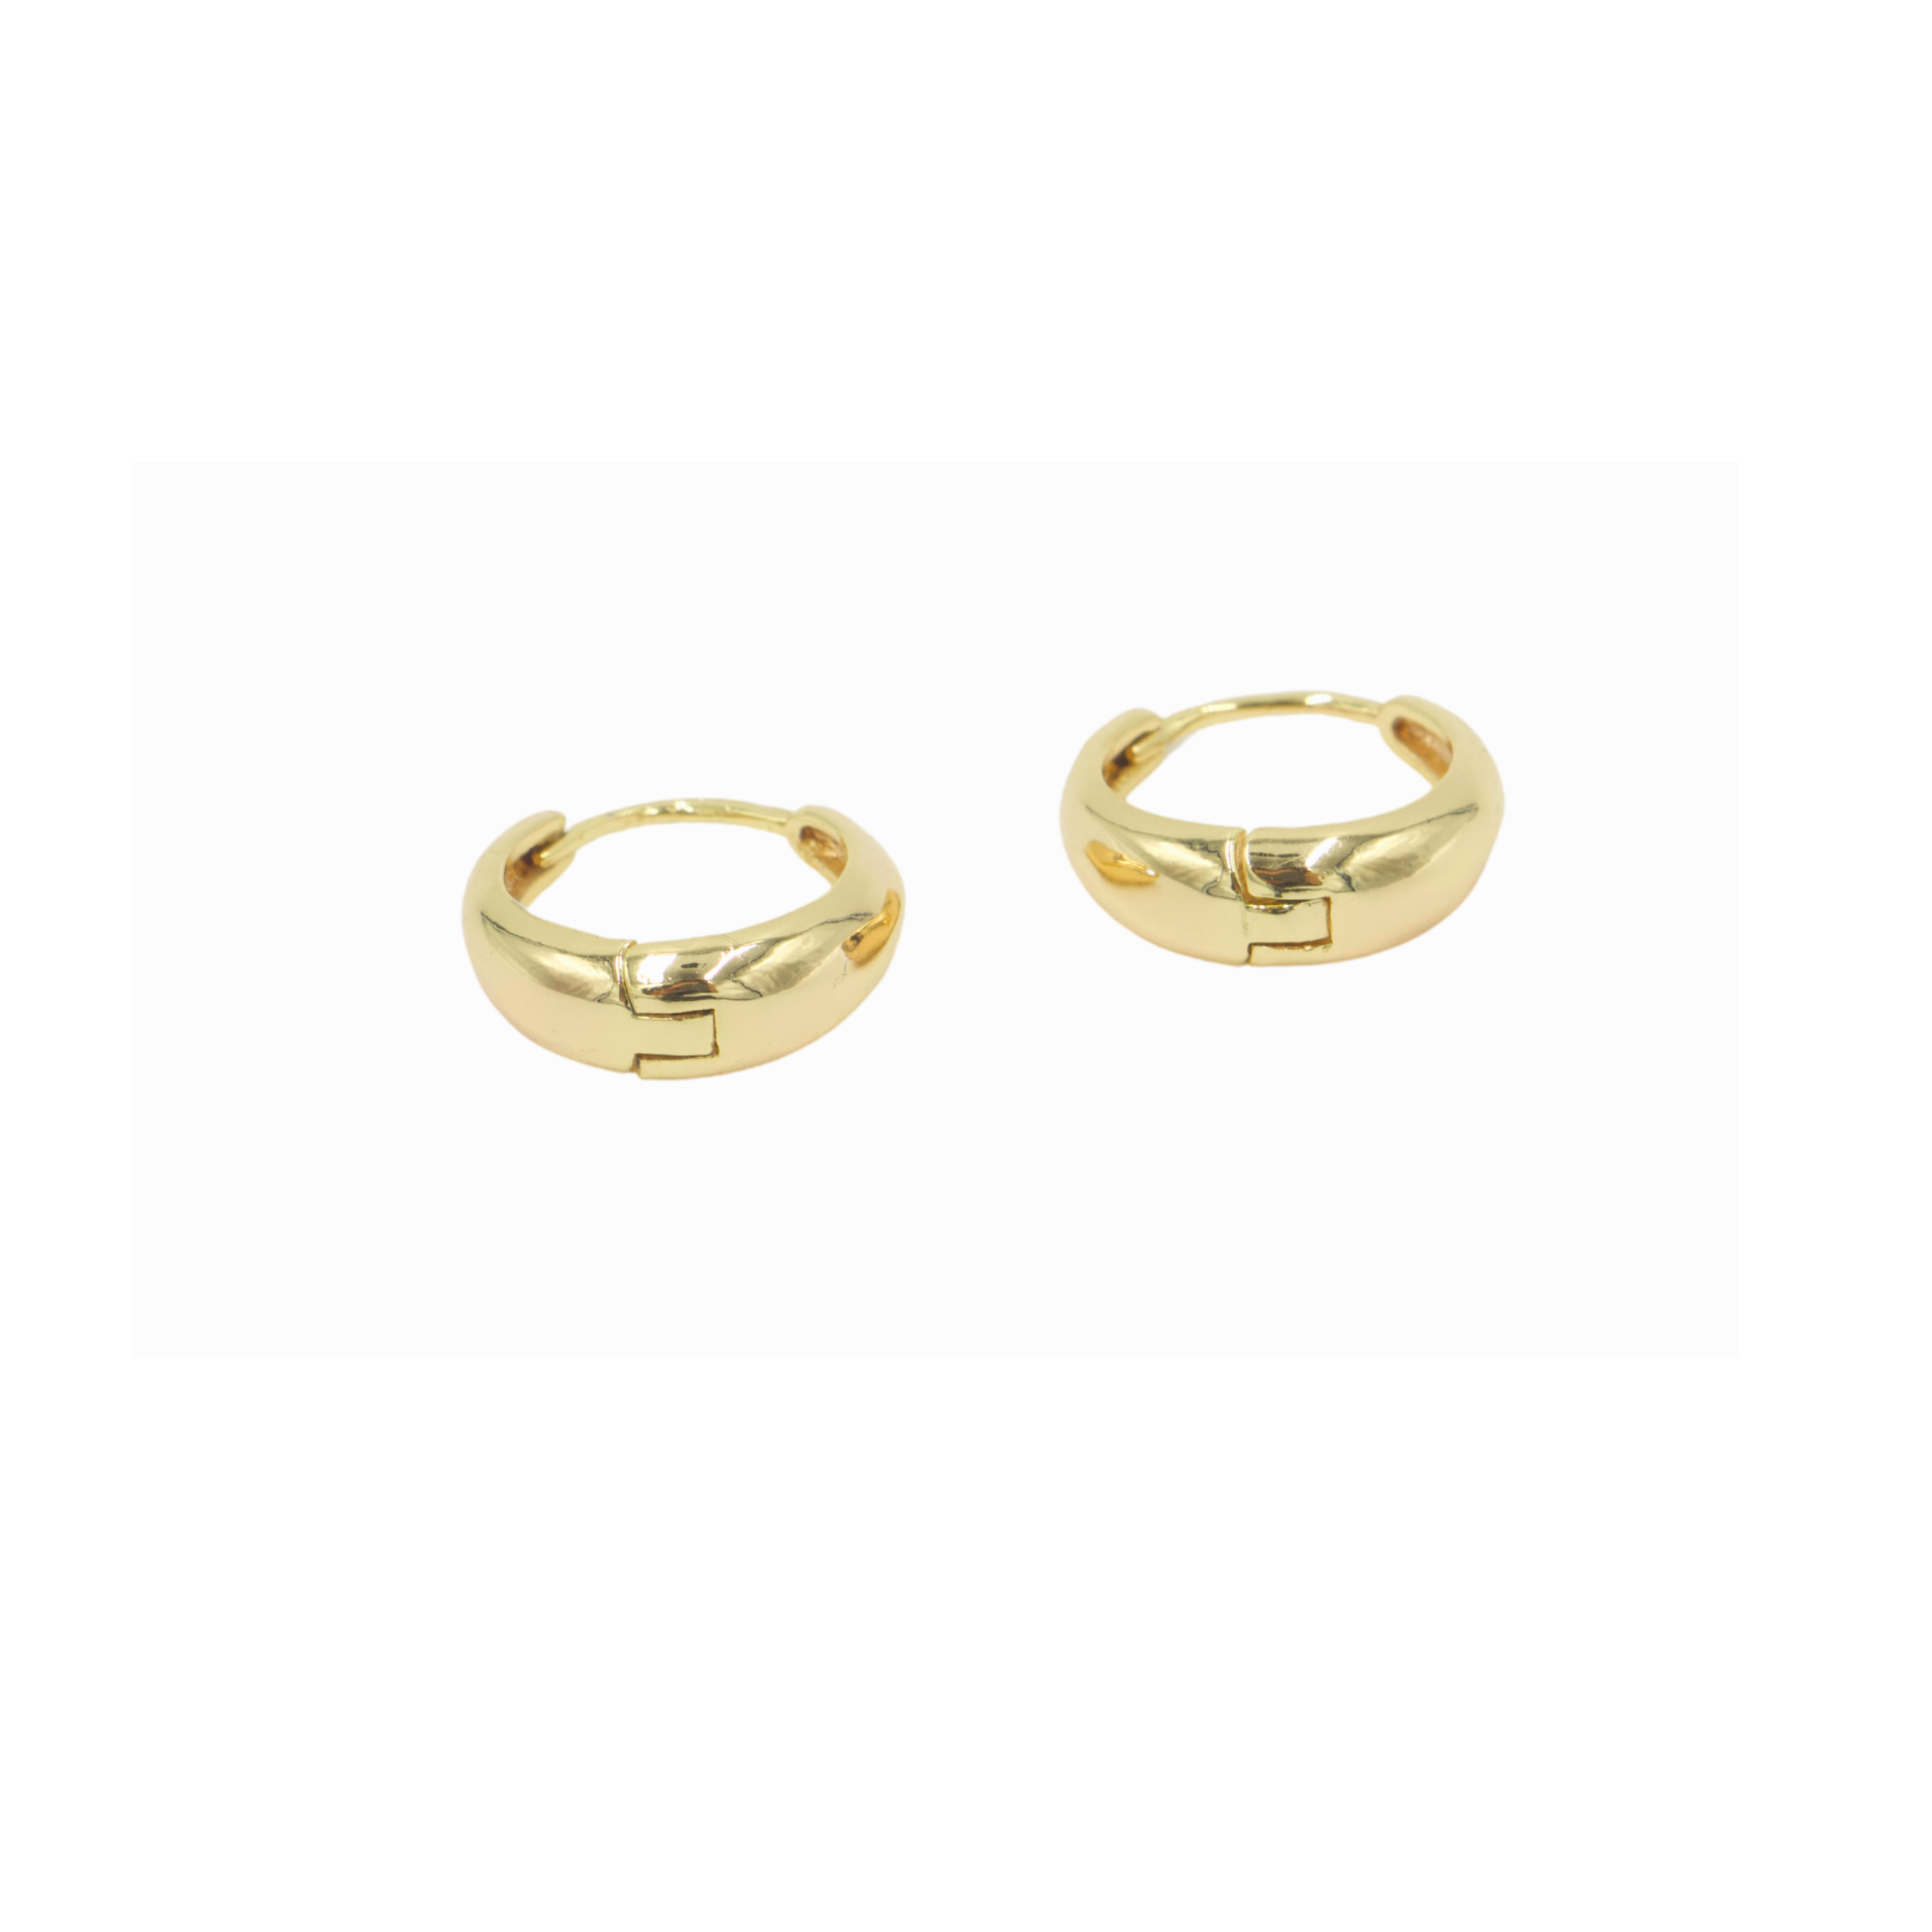 AW Boutique's gold filled large everyday huggie hoops (15mm diameter) are a classic must have for any earring lover.